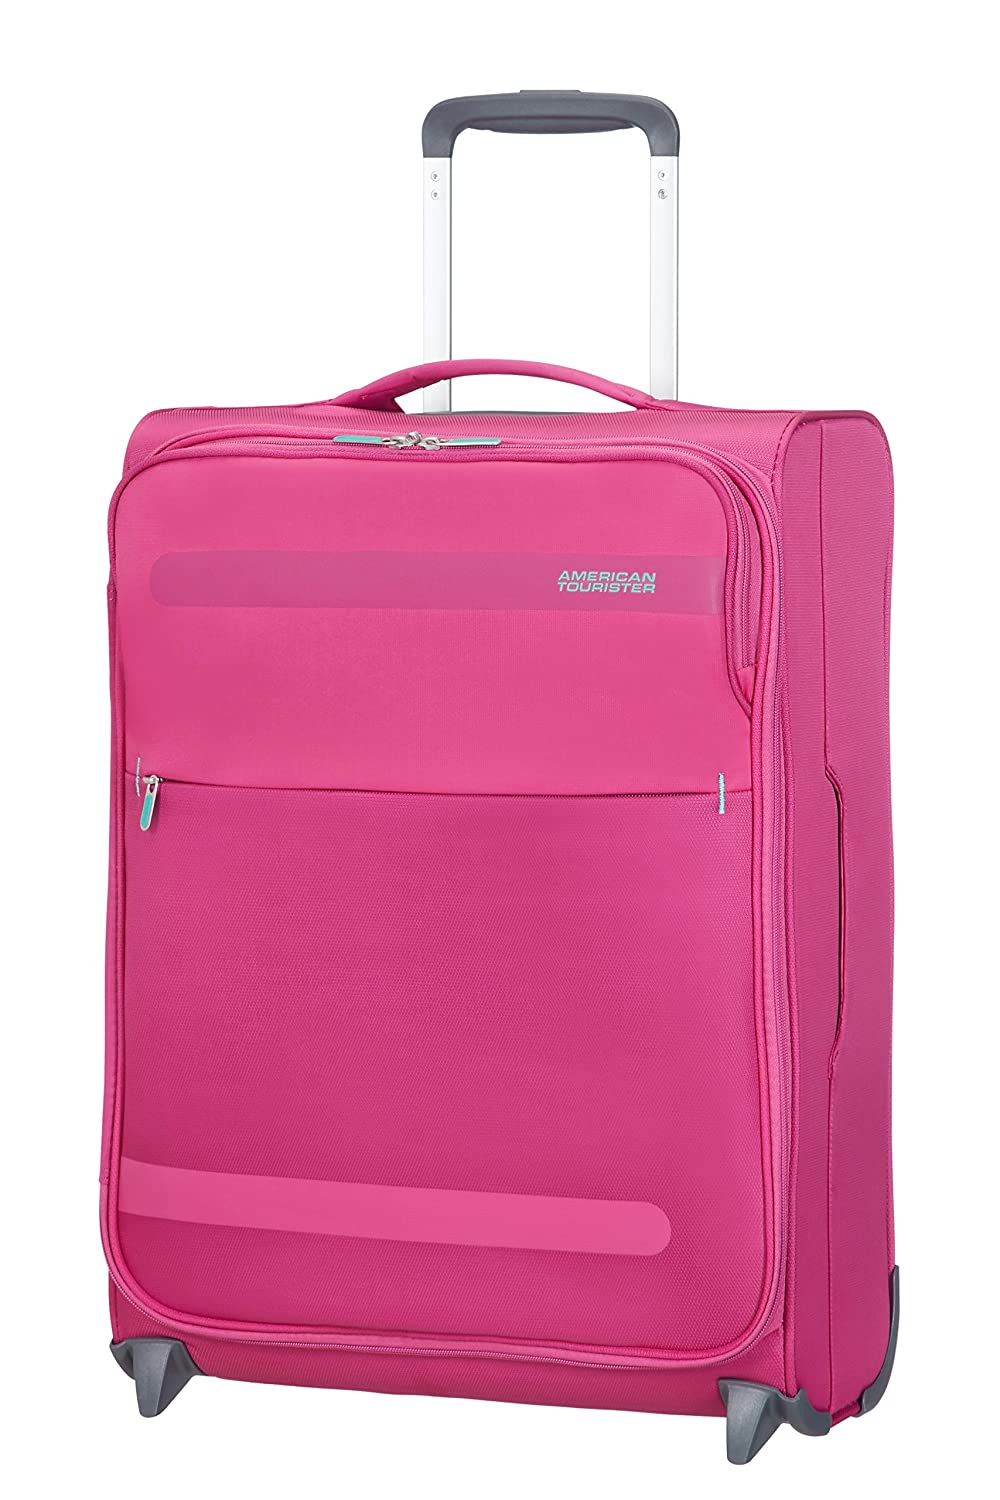 American Tourister Herolite Super Light Upright Equipaje de Mano cm Litros Color